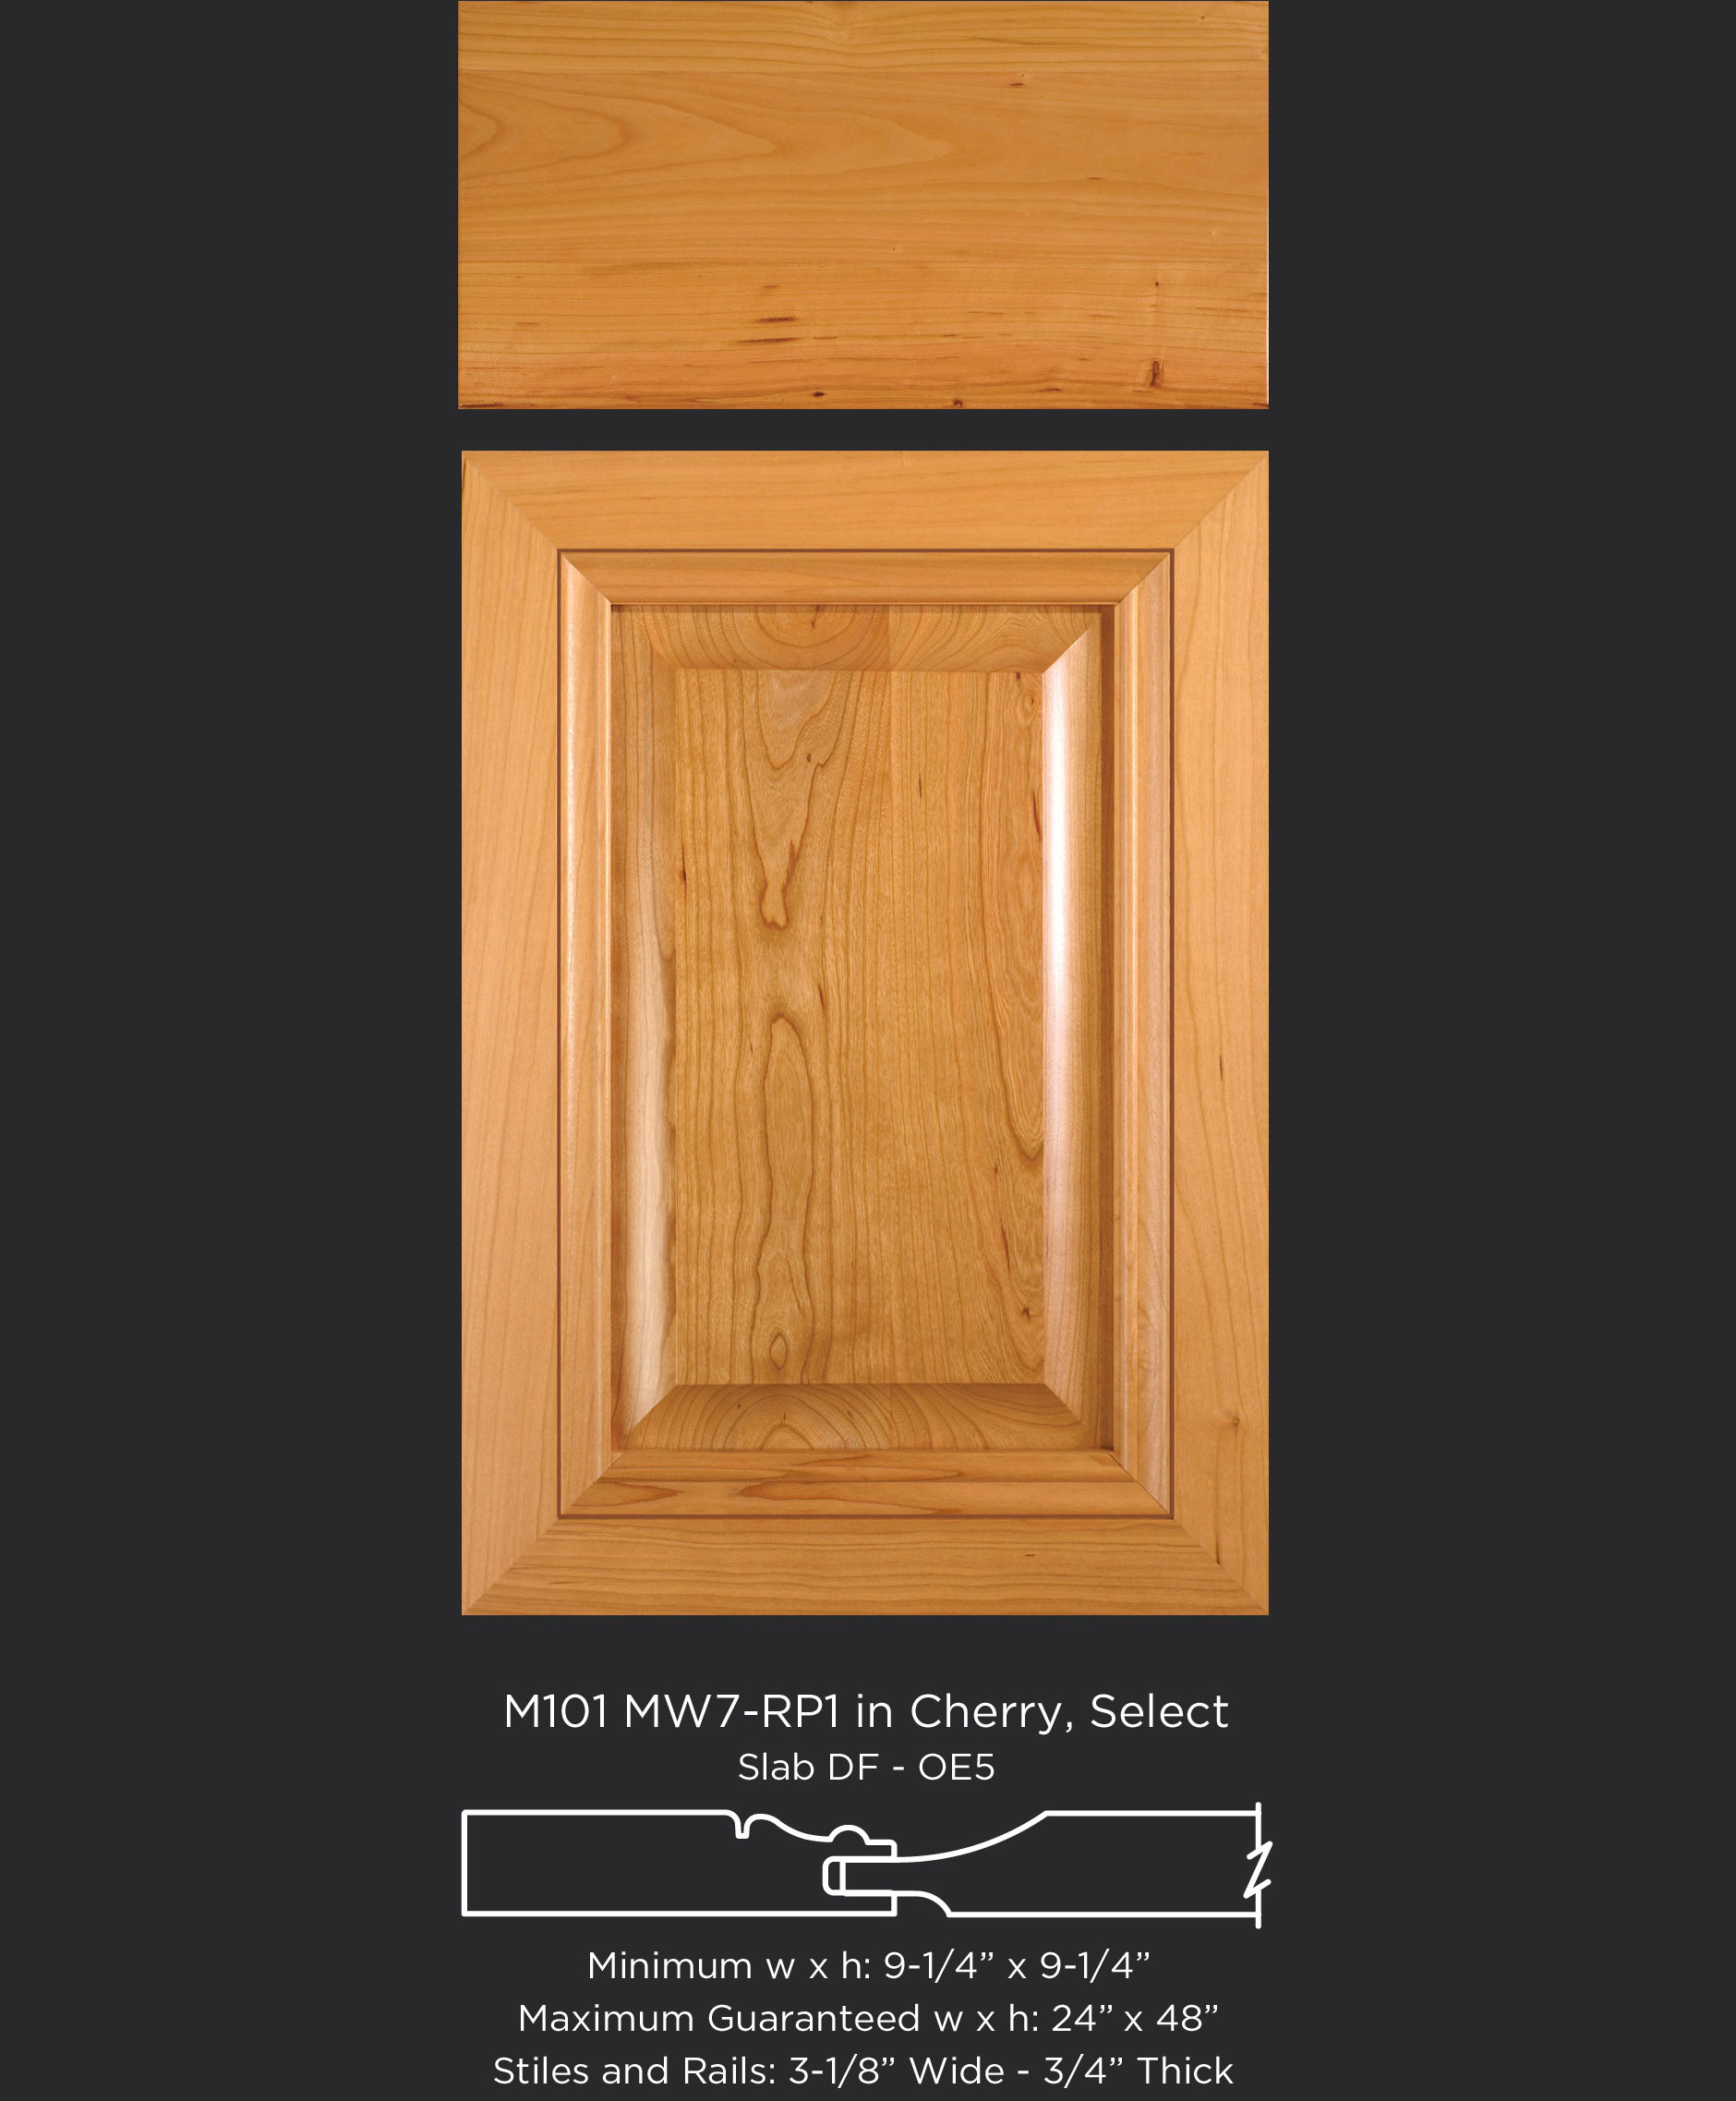 4110 Mitered Cabinet Door M101 MW7 RP1 In Cherry Select And Slab Drawer picture of Taylor & Taylor Doors Ideas Design Pics u0026 Examples | sneadsferry.info ... pezcame.com